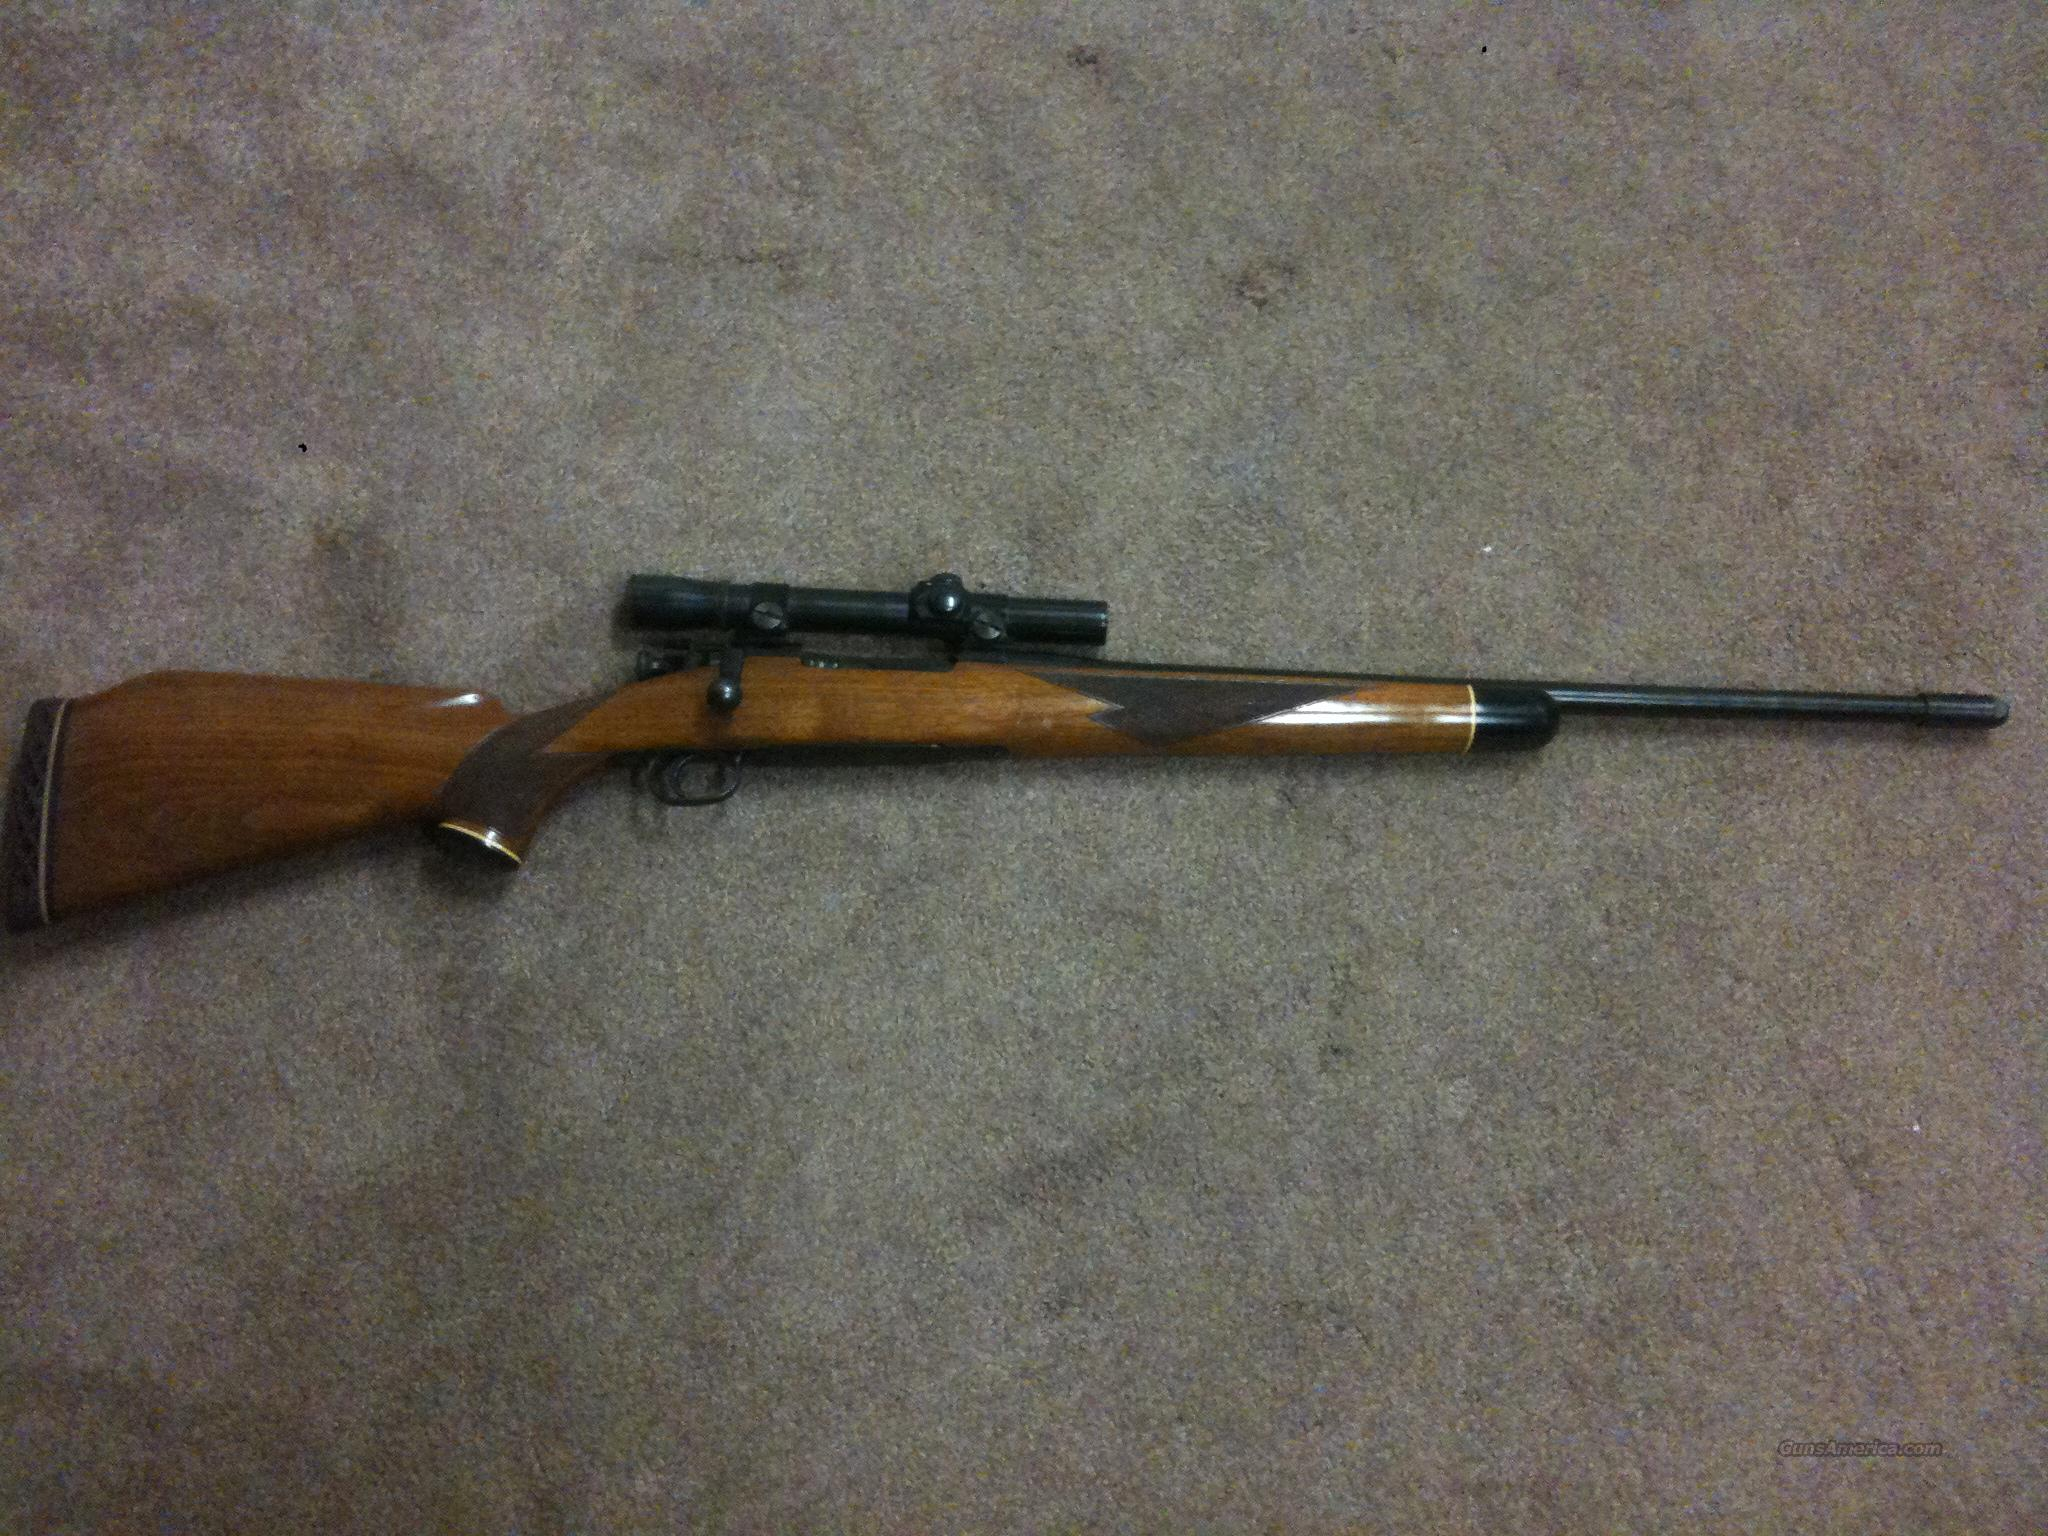 U.S. REMINGTON MODEL 1903 - 30.06 CAL. SPORTERIZED CUSTOM RIFLE - WITH SCOPE - EXCELLENT CONDITION -   Guns > Rifles > Military Misc. Rifles US > 1903 Springfield/Variants